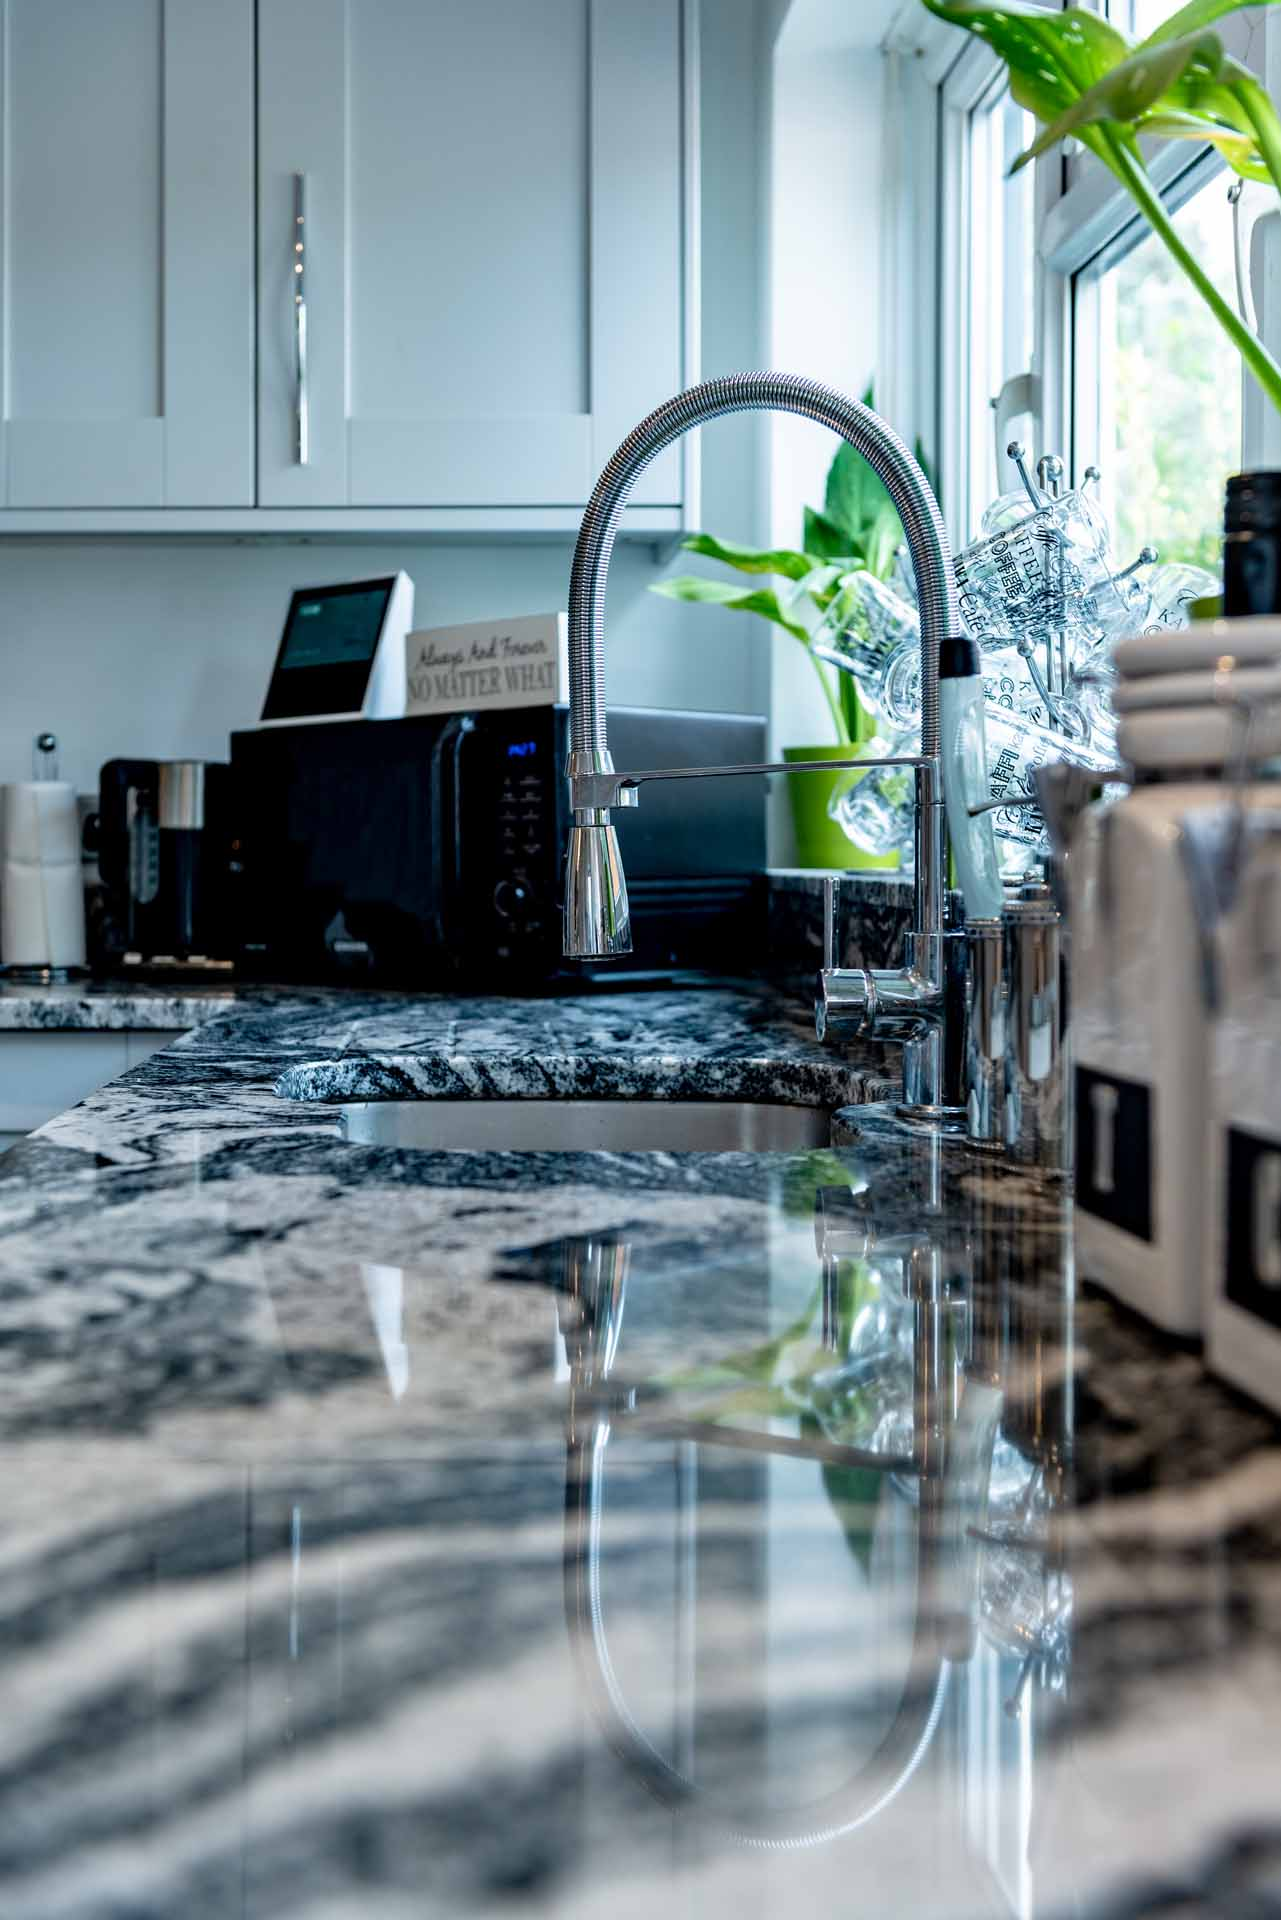 Cosmic White Granite Worktops, Redhill Surrey